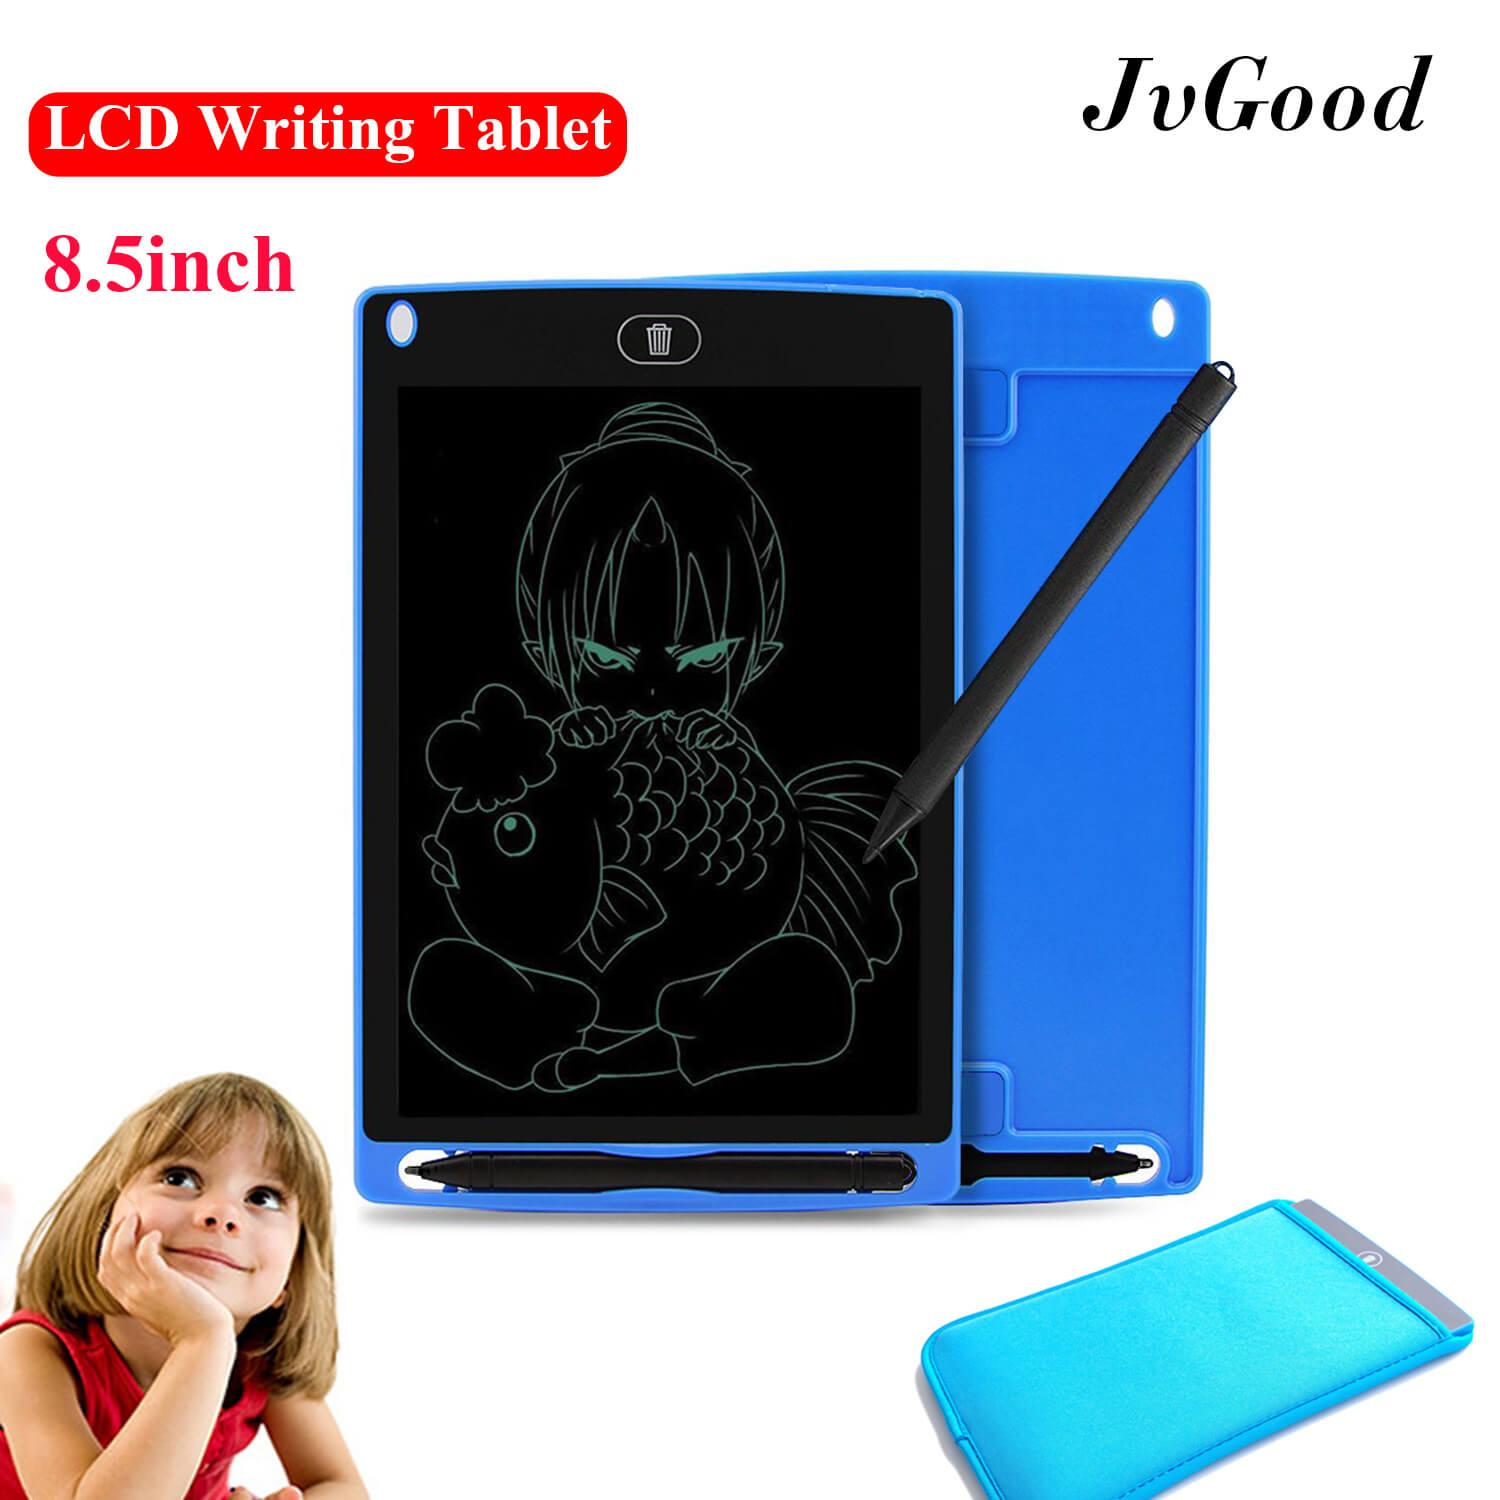 Jvgood Lcd Writing Tablet Pad: 8.5 Inch Electronic Drawing Writing Board For Kids Adults, Portable Magnetic Ewriter, Digital, Handwriting Paper Doodle Board For School, Fridge Or Office By Jvgood.